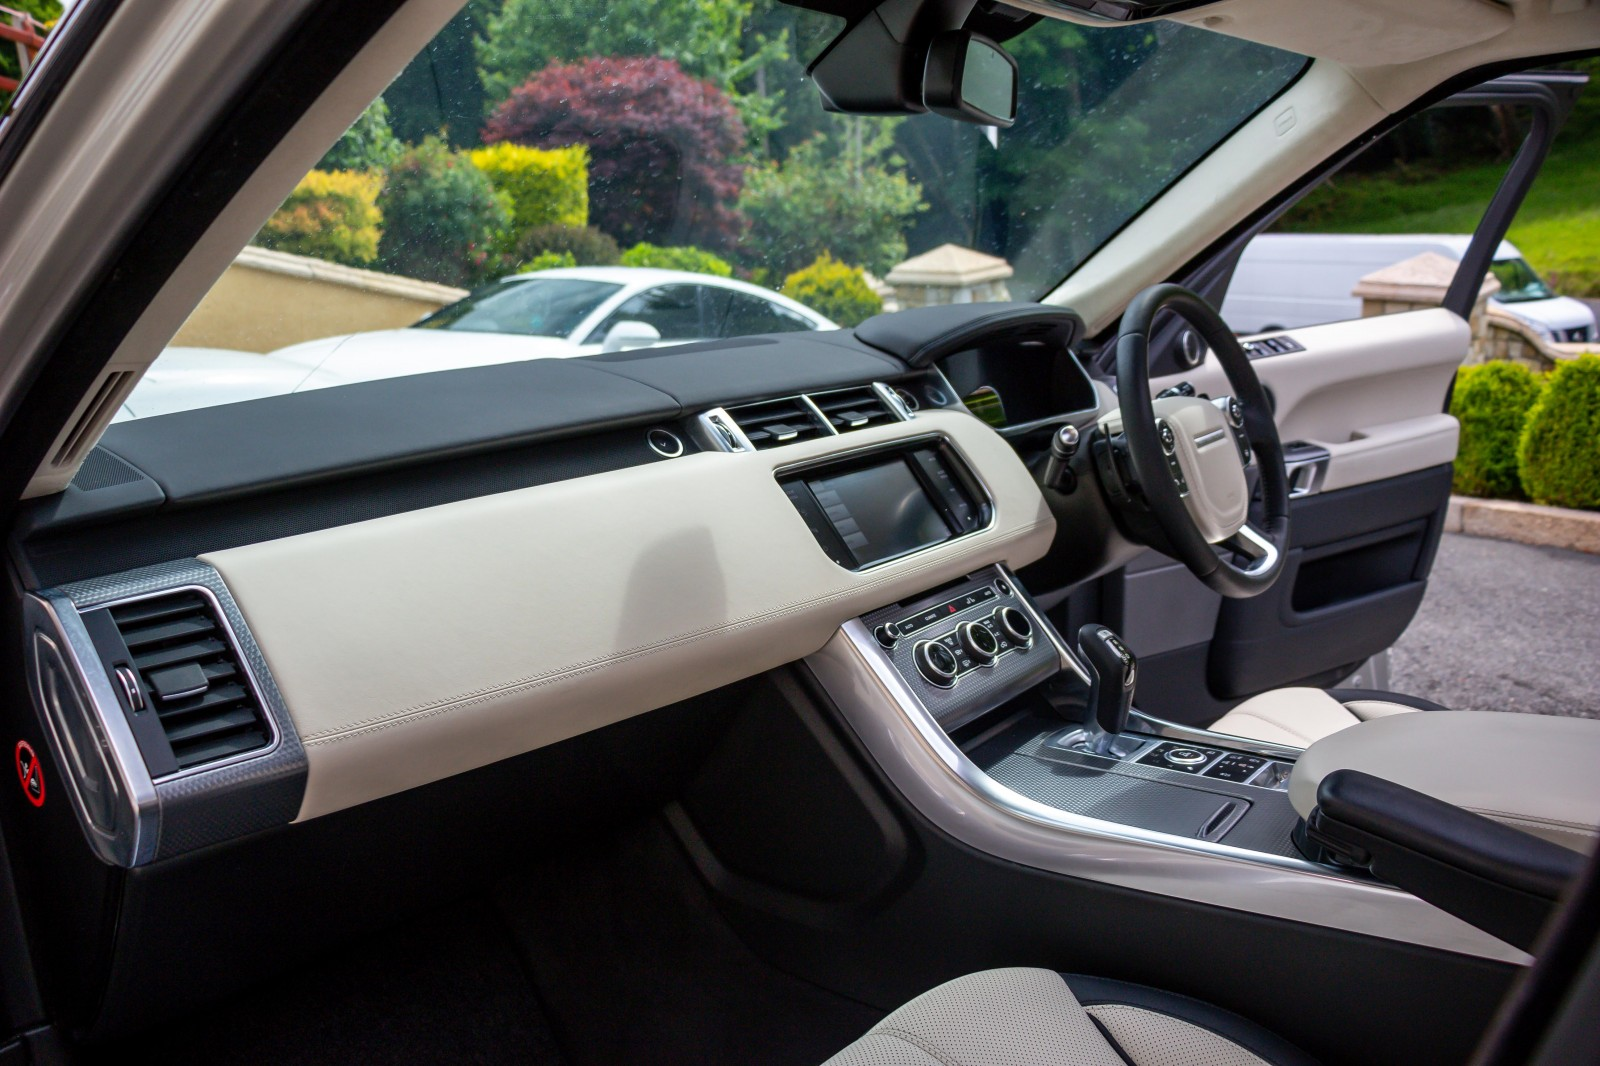 2014 Land Rover Range Rover Sport 5.0 V8 AUTOBIOGRAPHY DYNAMIC Petrol Automatic – Morgan Cars 9 Mound Road, Warrenpoint, Newry BT34 3LW, UK full